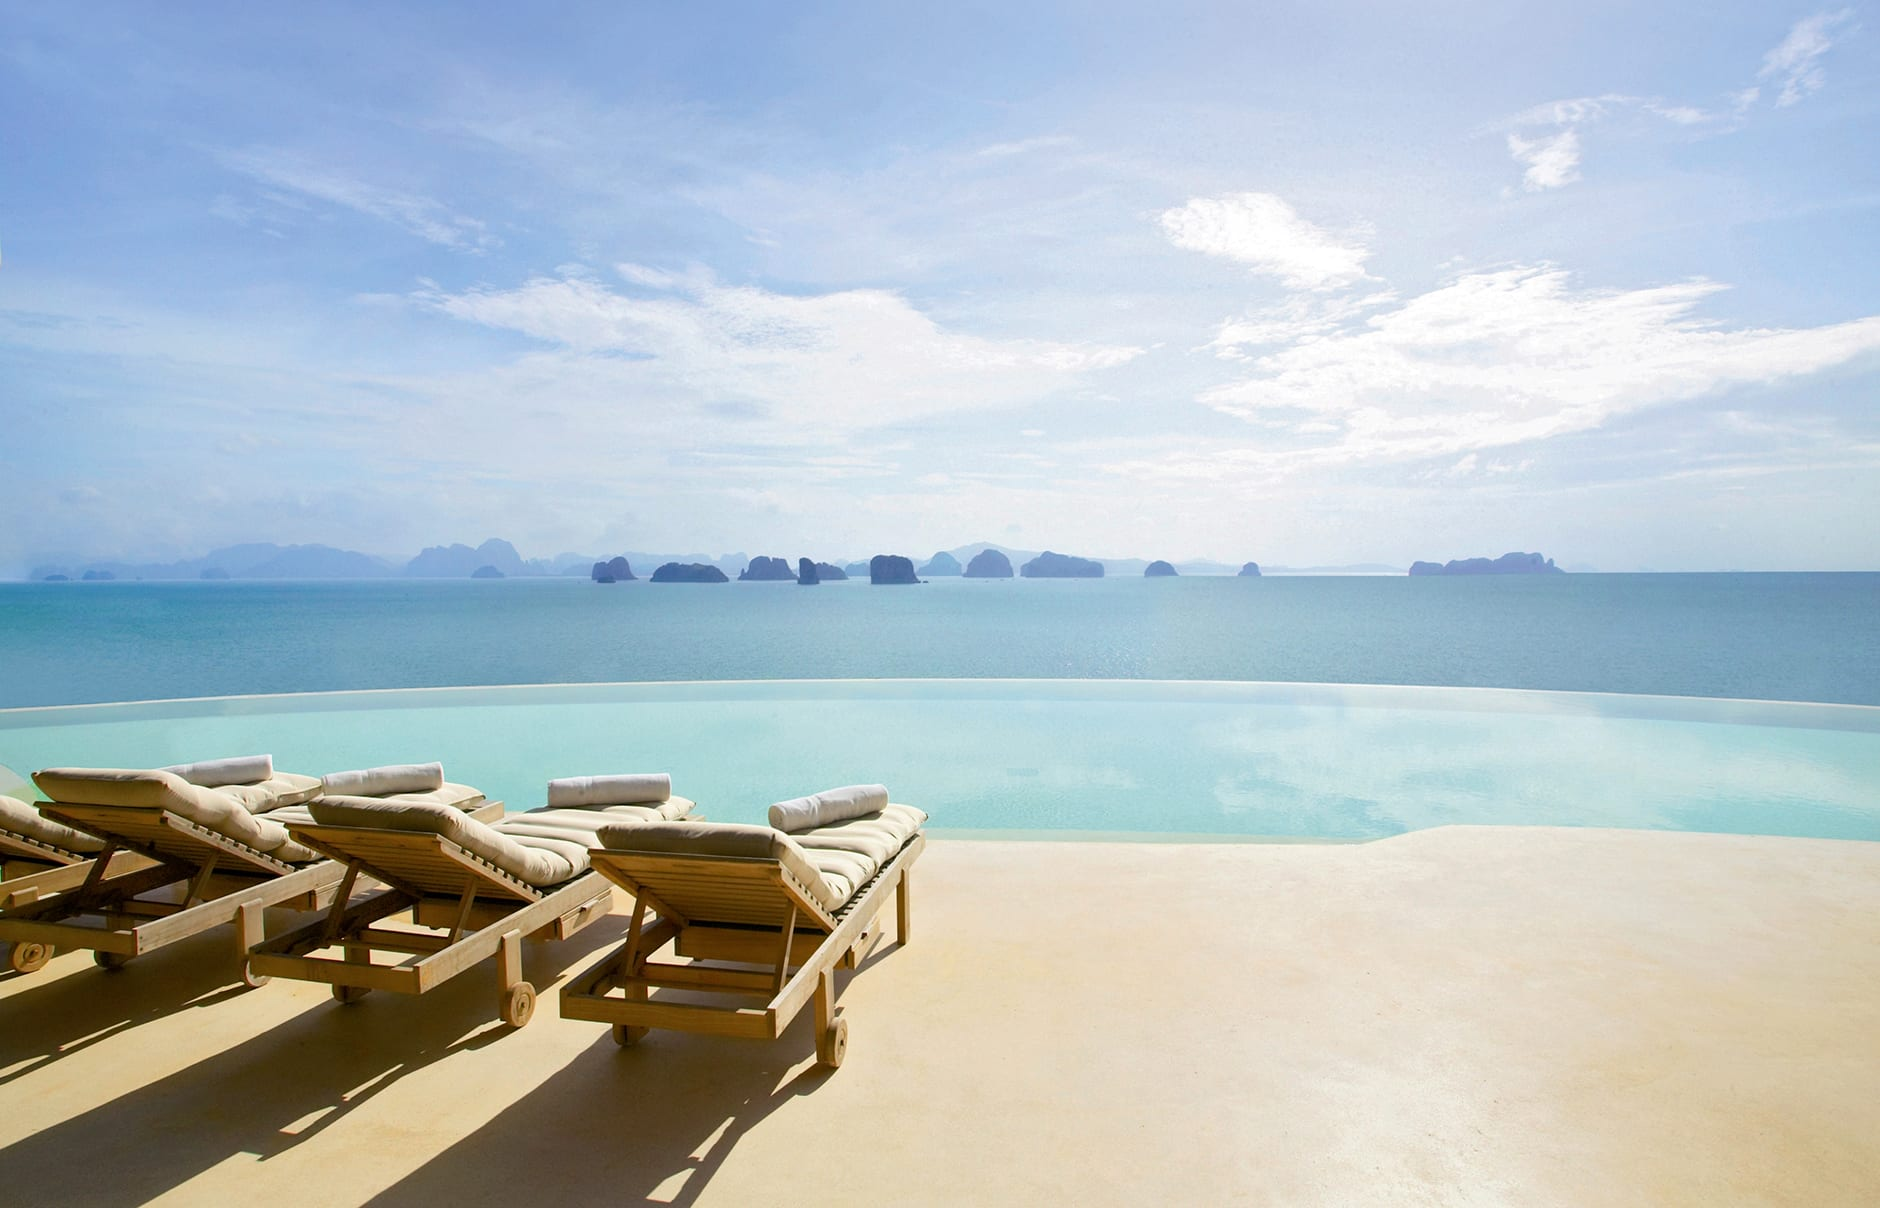 Hilltop Reserve. Six Senses Yao Noi Beyond Phuket, Thailand. © Six Senses Hotels Resorts Spas